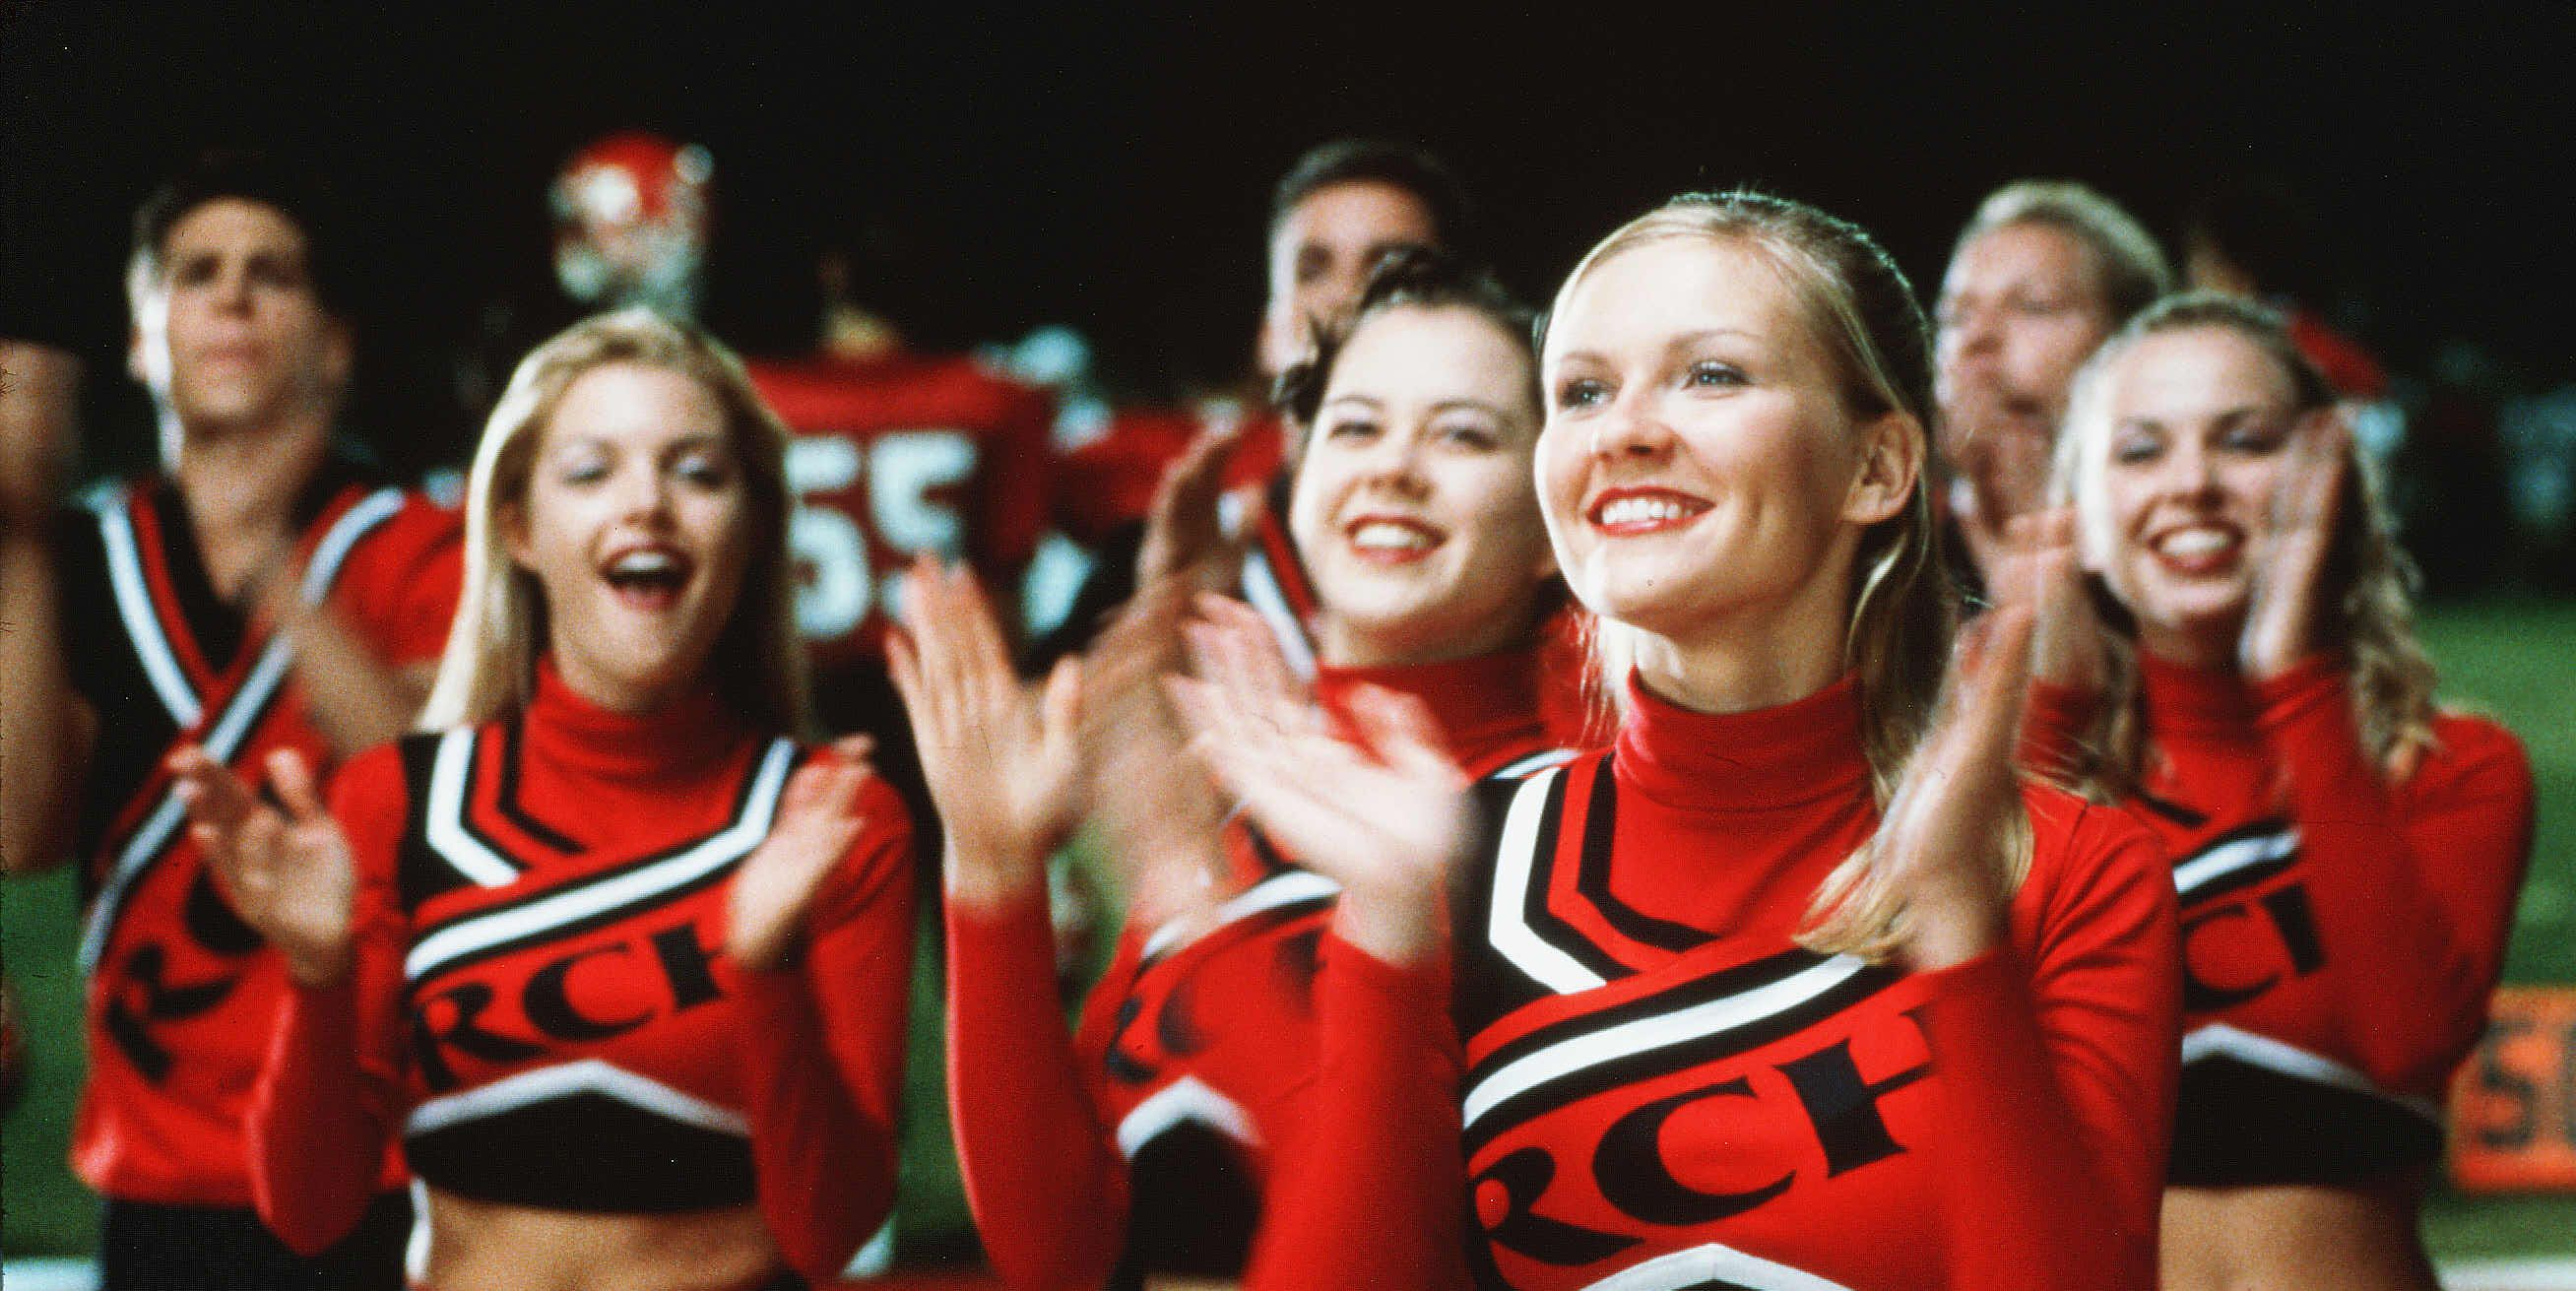 48 of the best teen movies to give you all the feels